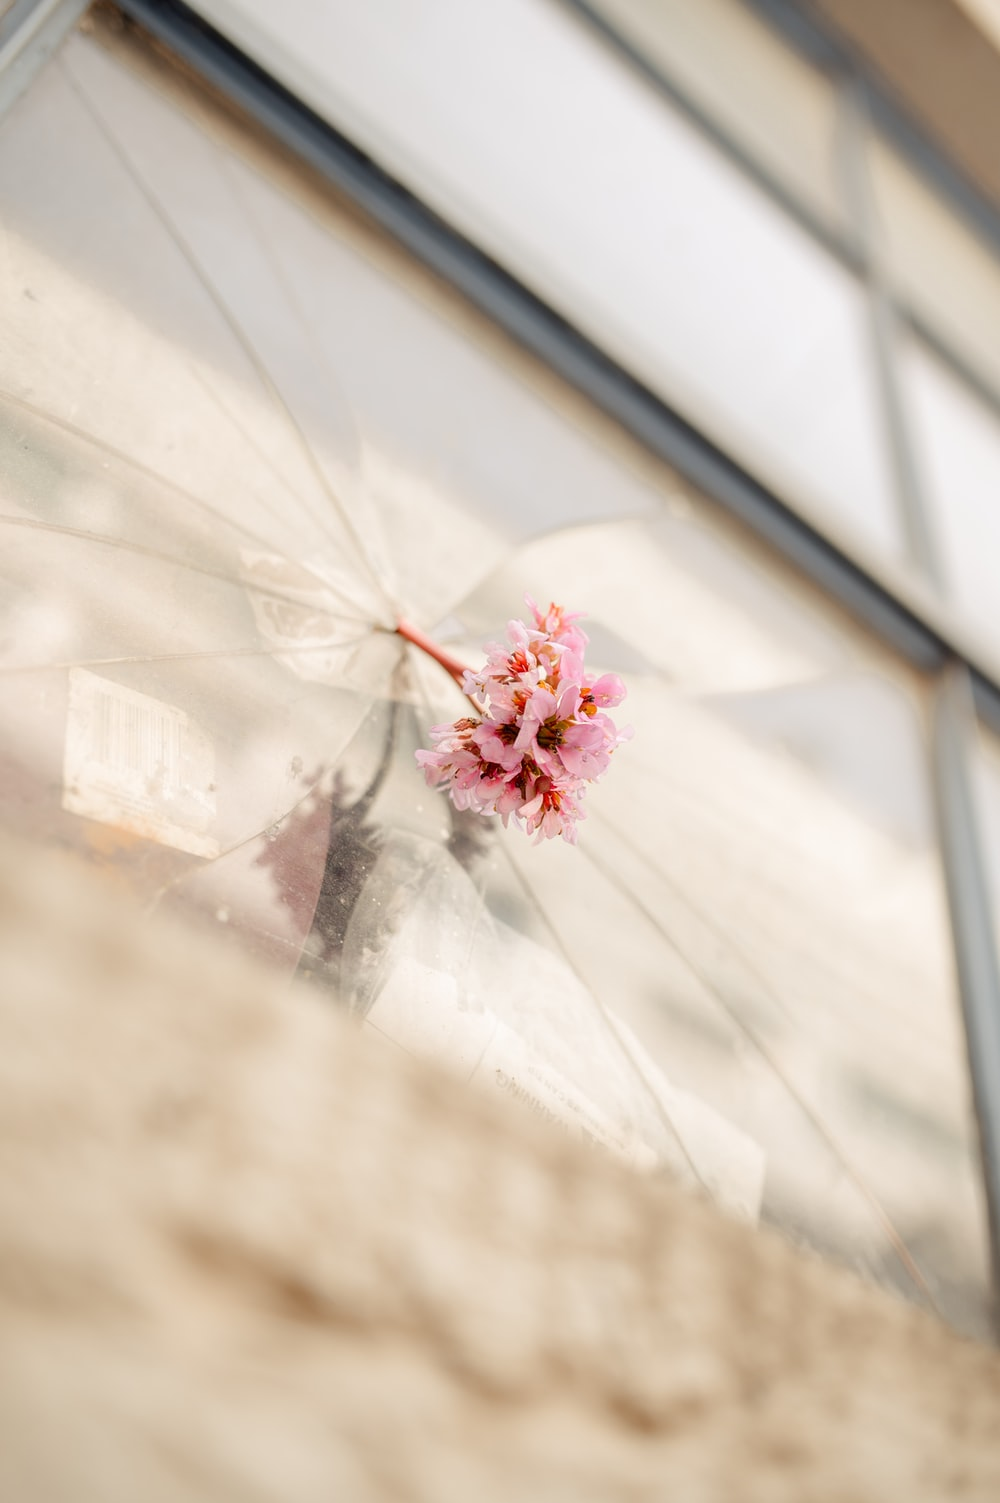 pink petaled flower on glass surface